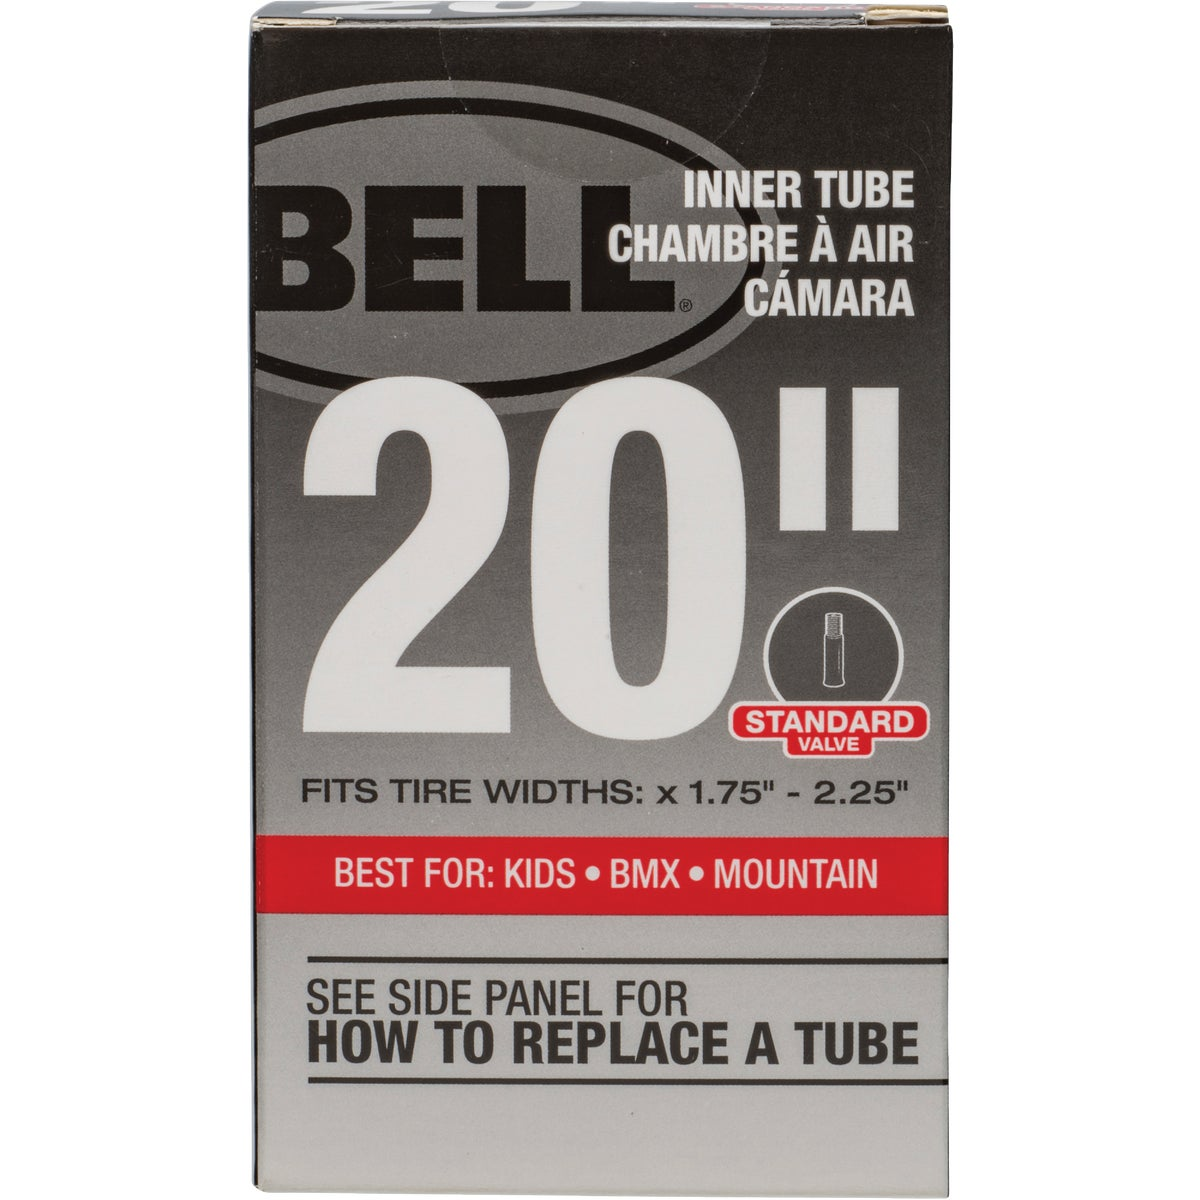 "20"" UNIVERSAL INNER TUBE - 7015357 by Bell Sports"